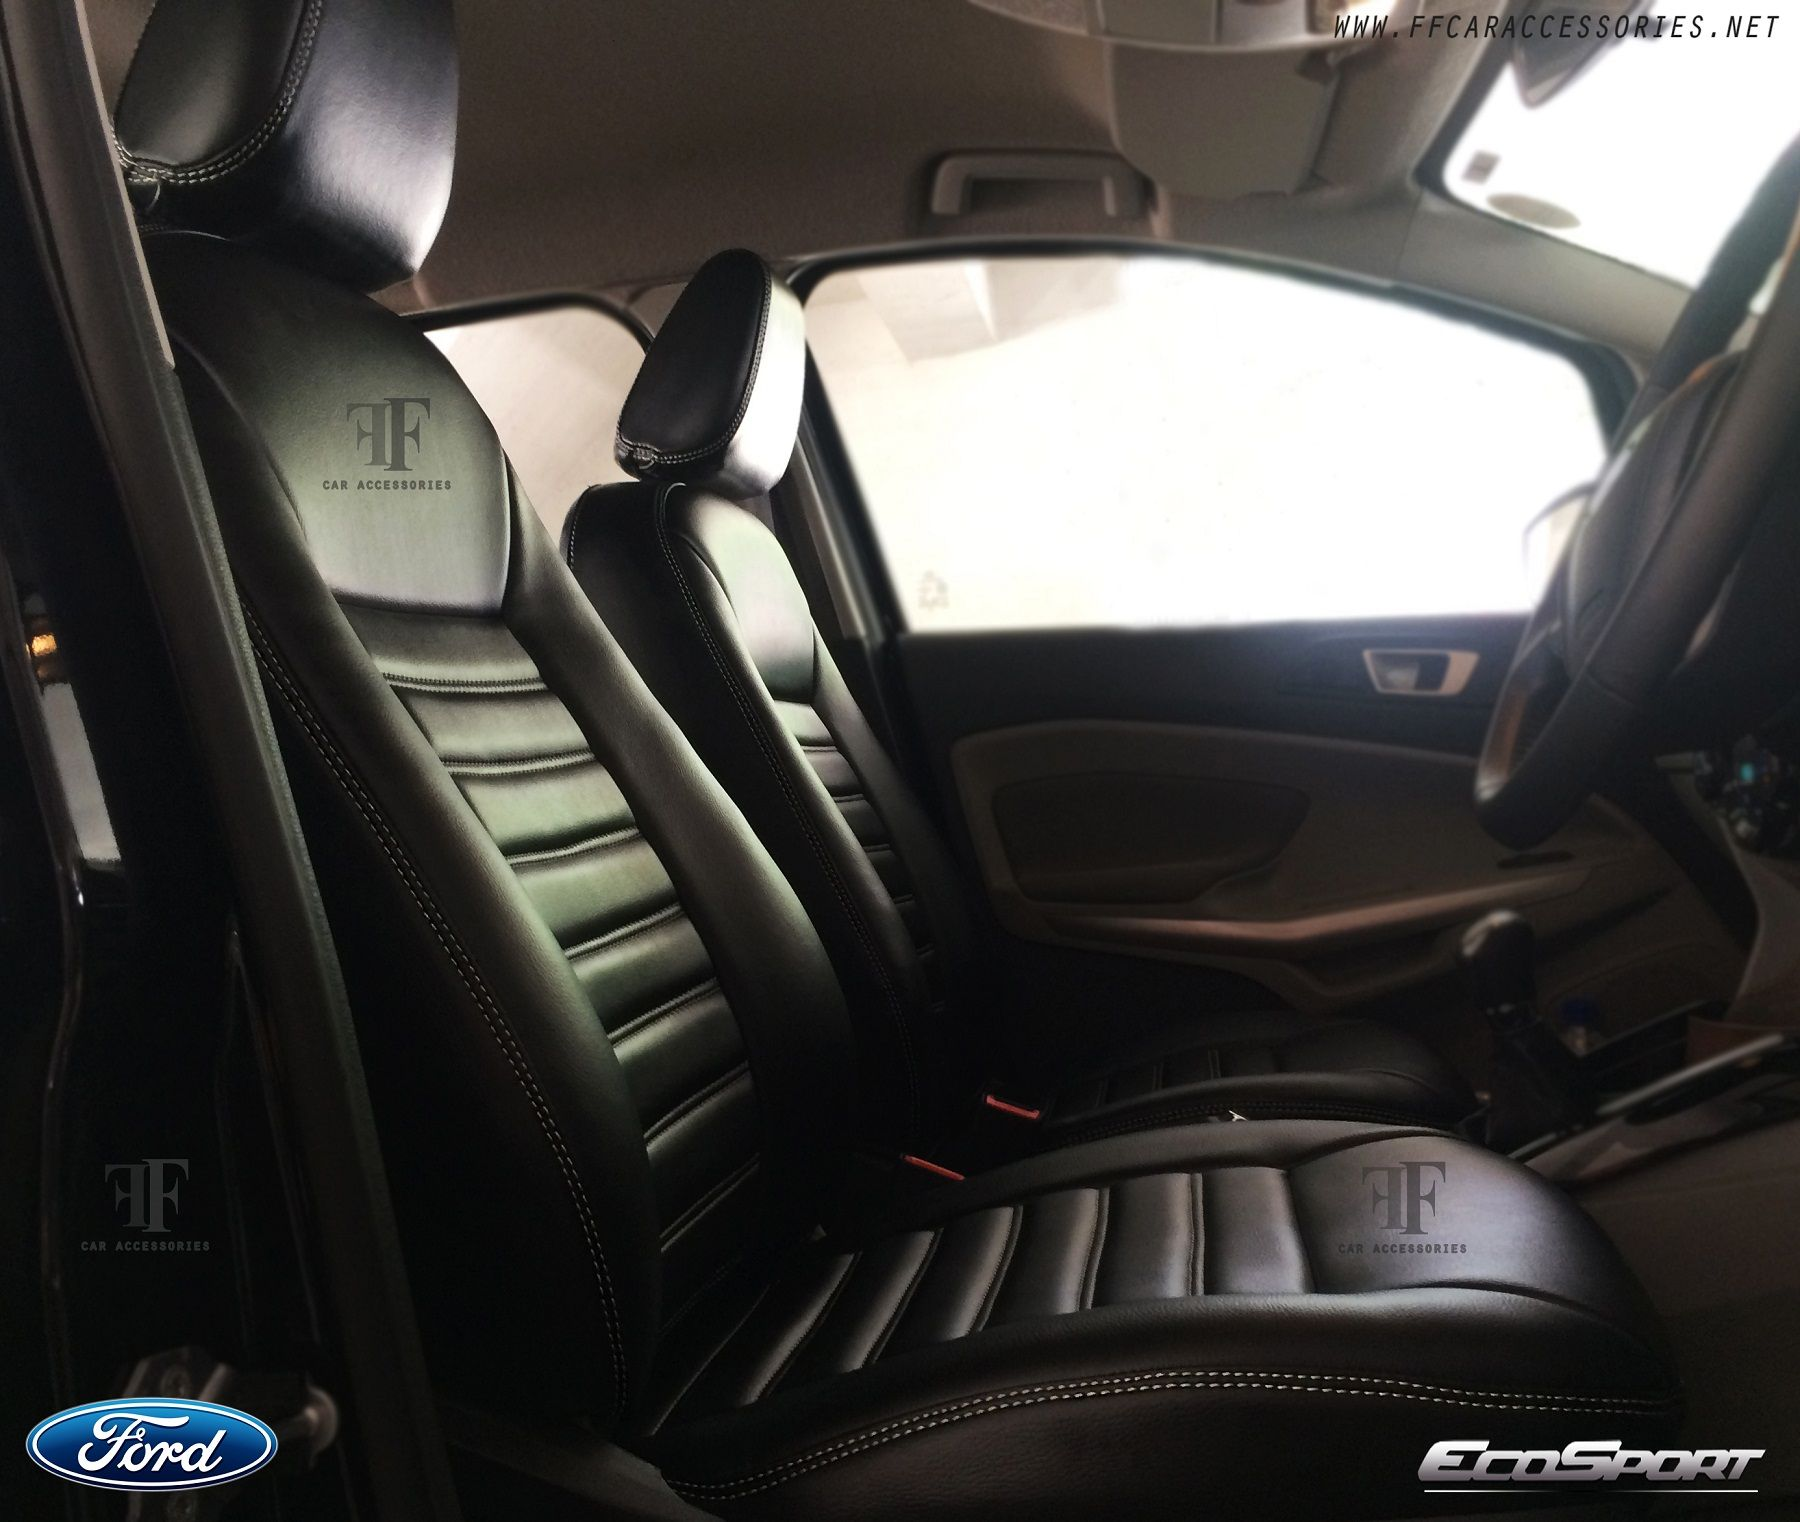 Ford Ecosport Seat Cover With Detailed White Stitch By Team Ff Car